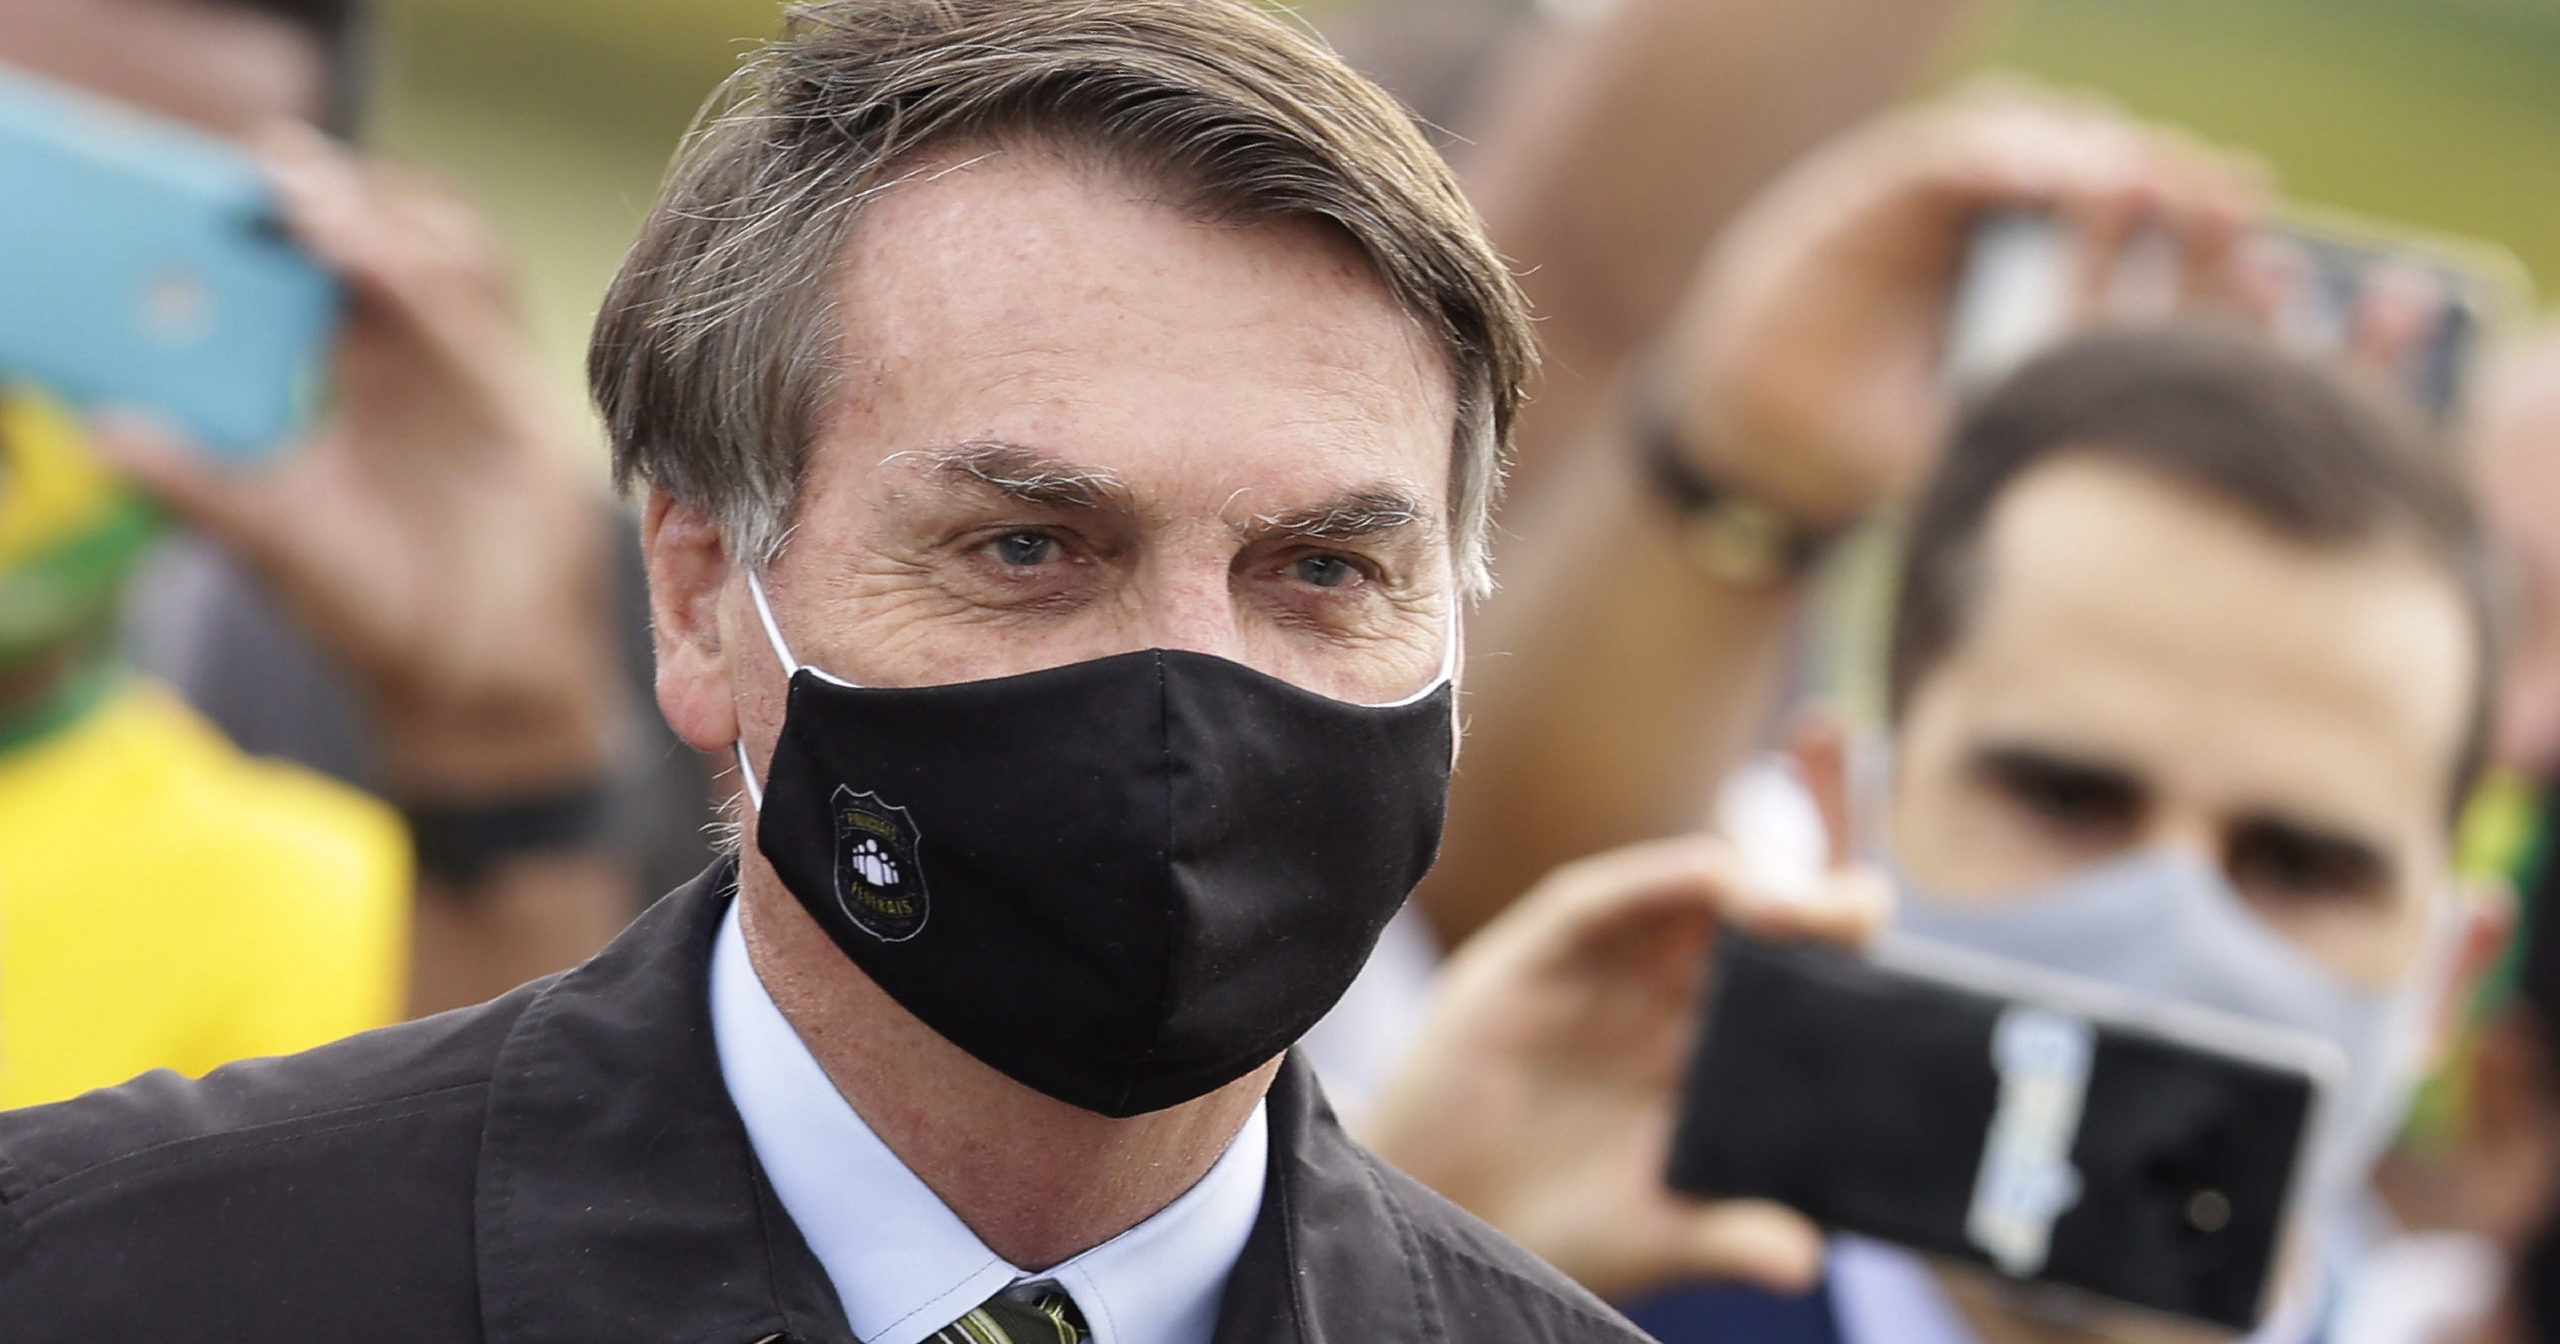 In this May 25, 2020, file photo, Brazilian President Jair Bolsonaro stands among supporters as he leaves his official residence in Brasilia, Brazil. Bolsonaro said on July 7 that he tested positive for COVID-19.